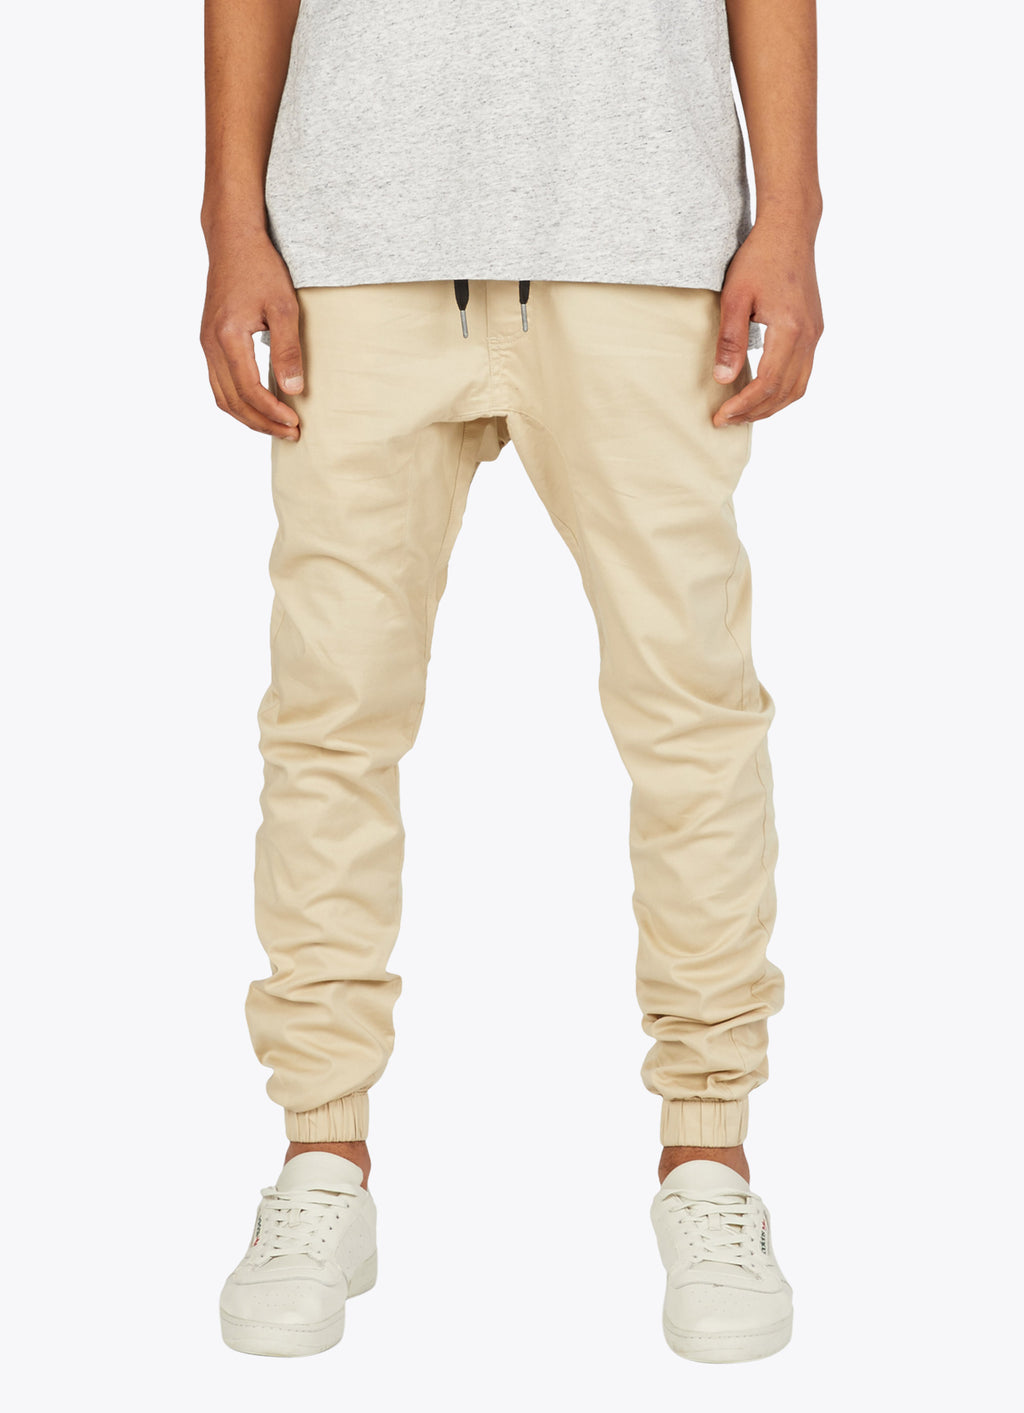 Sureshot Lightweight Jogger